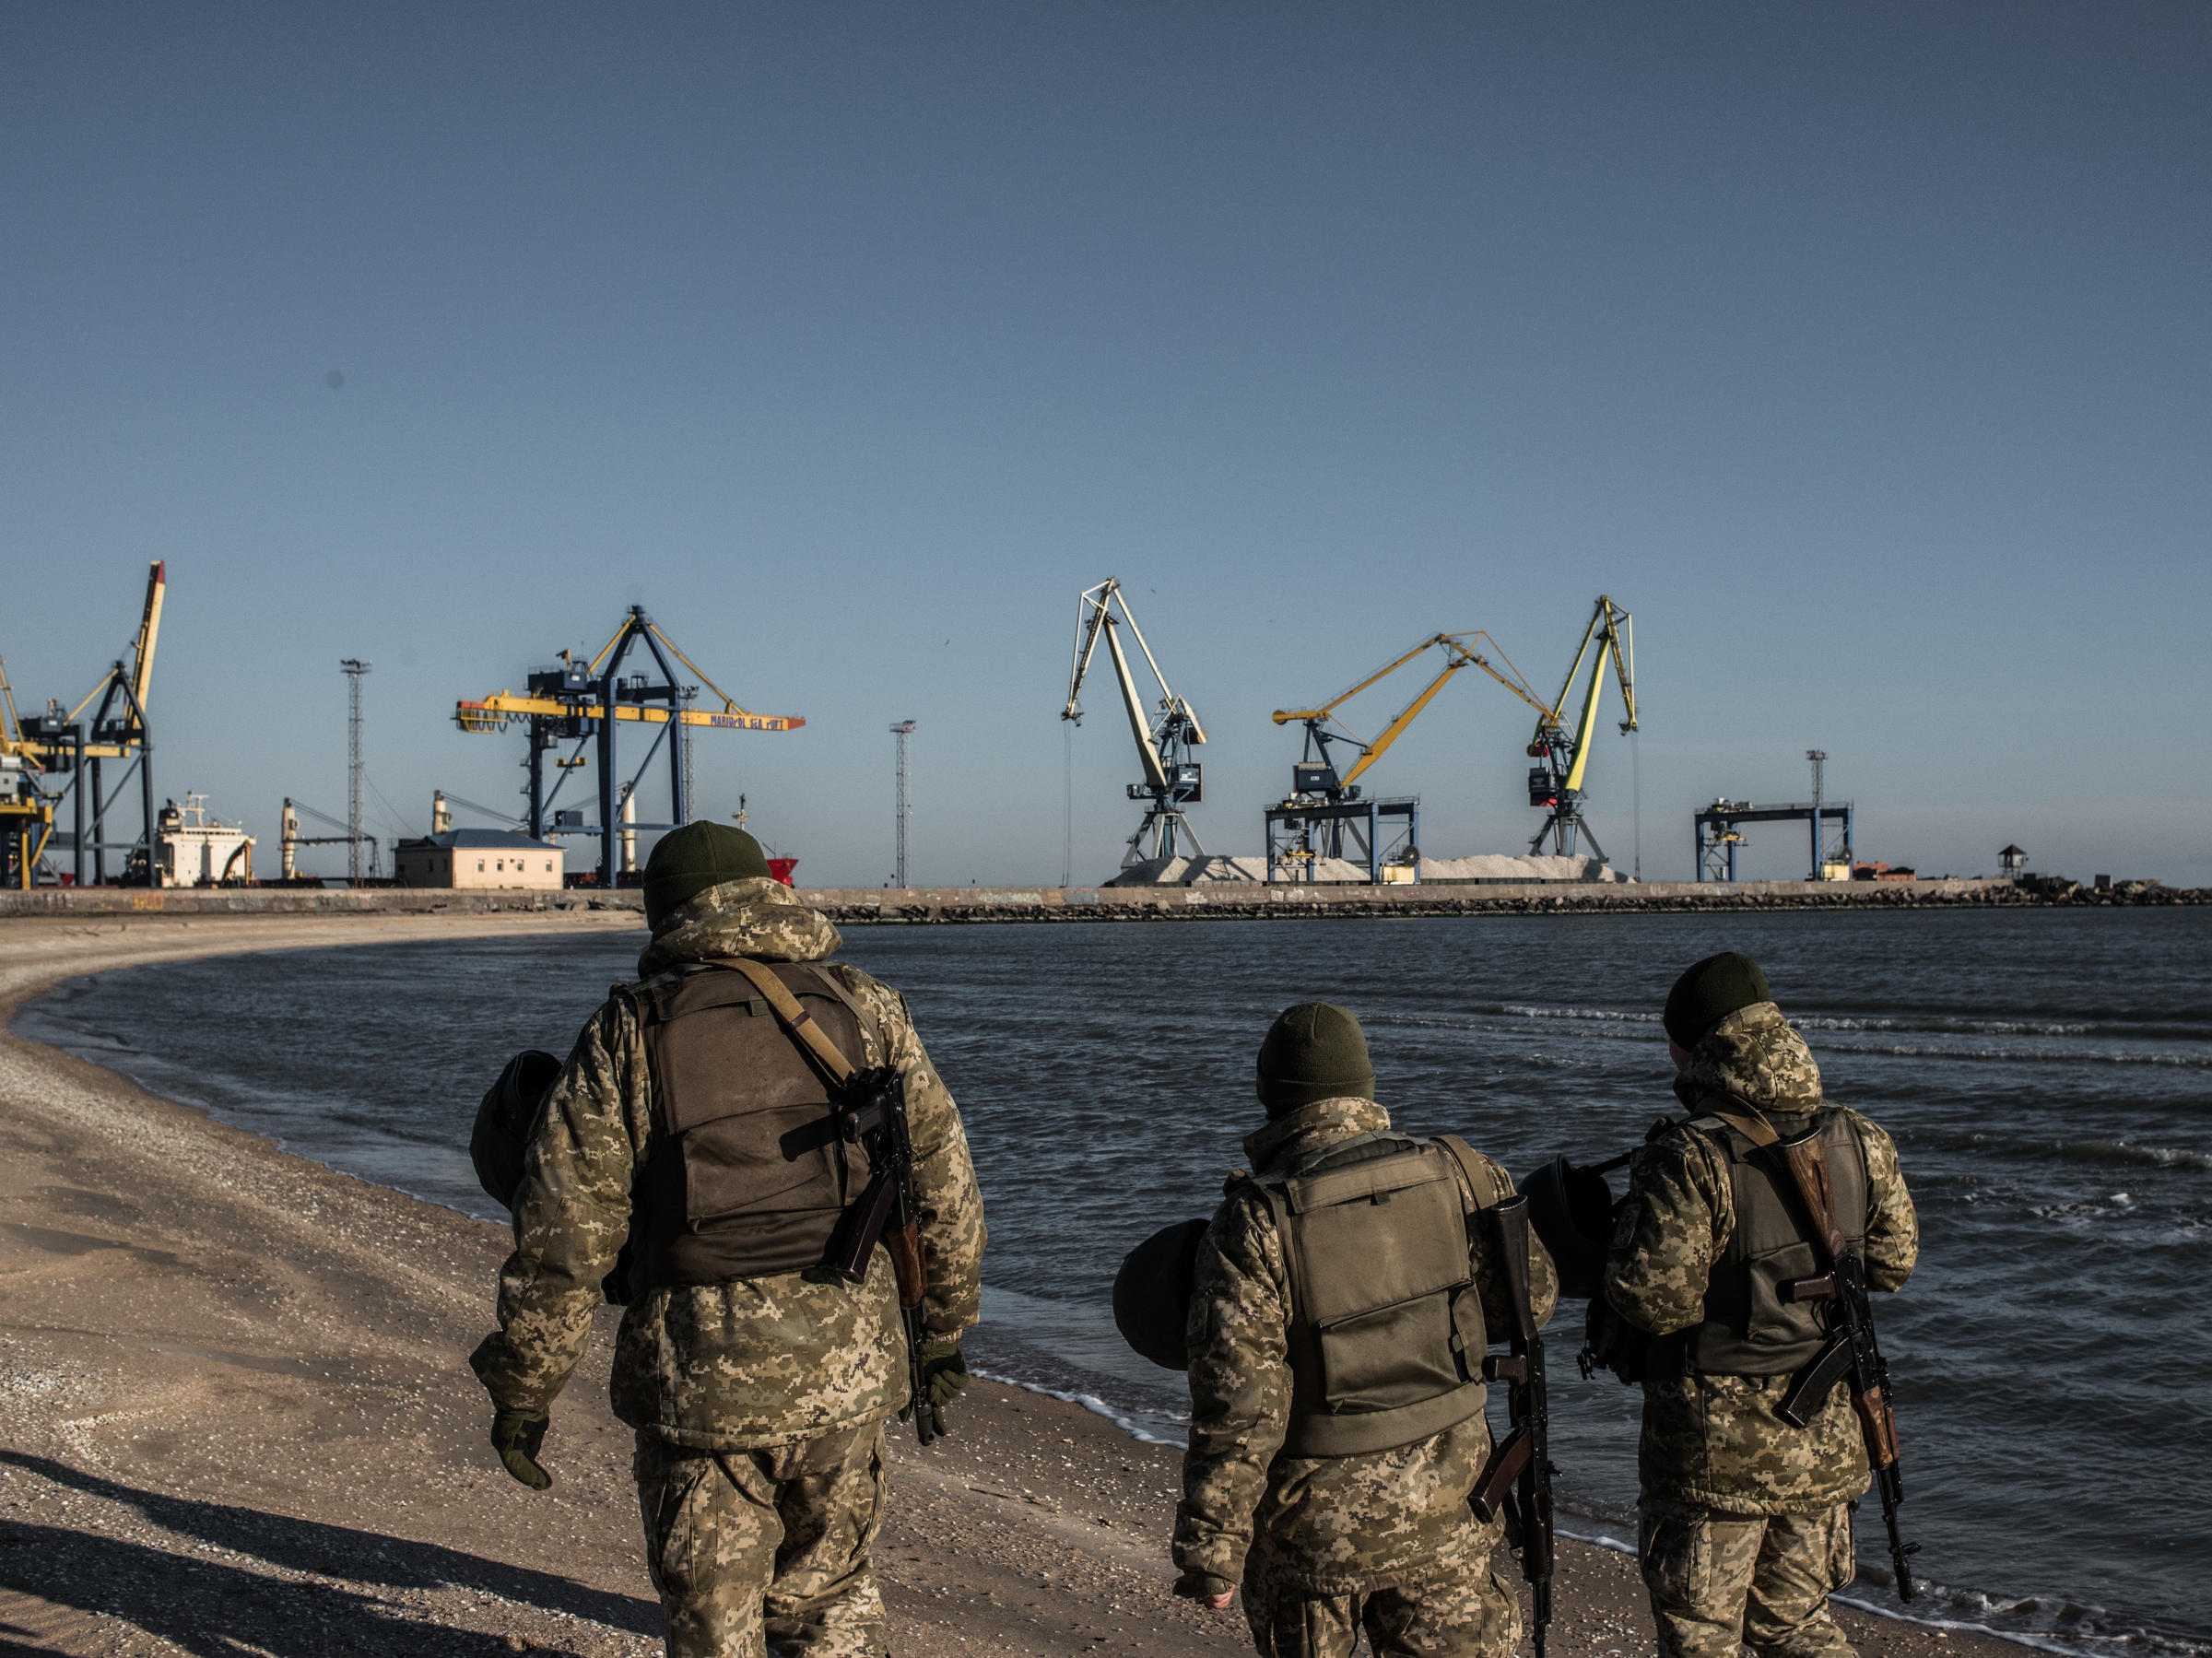 Russian men barred from Ukraine